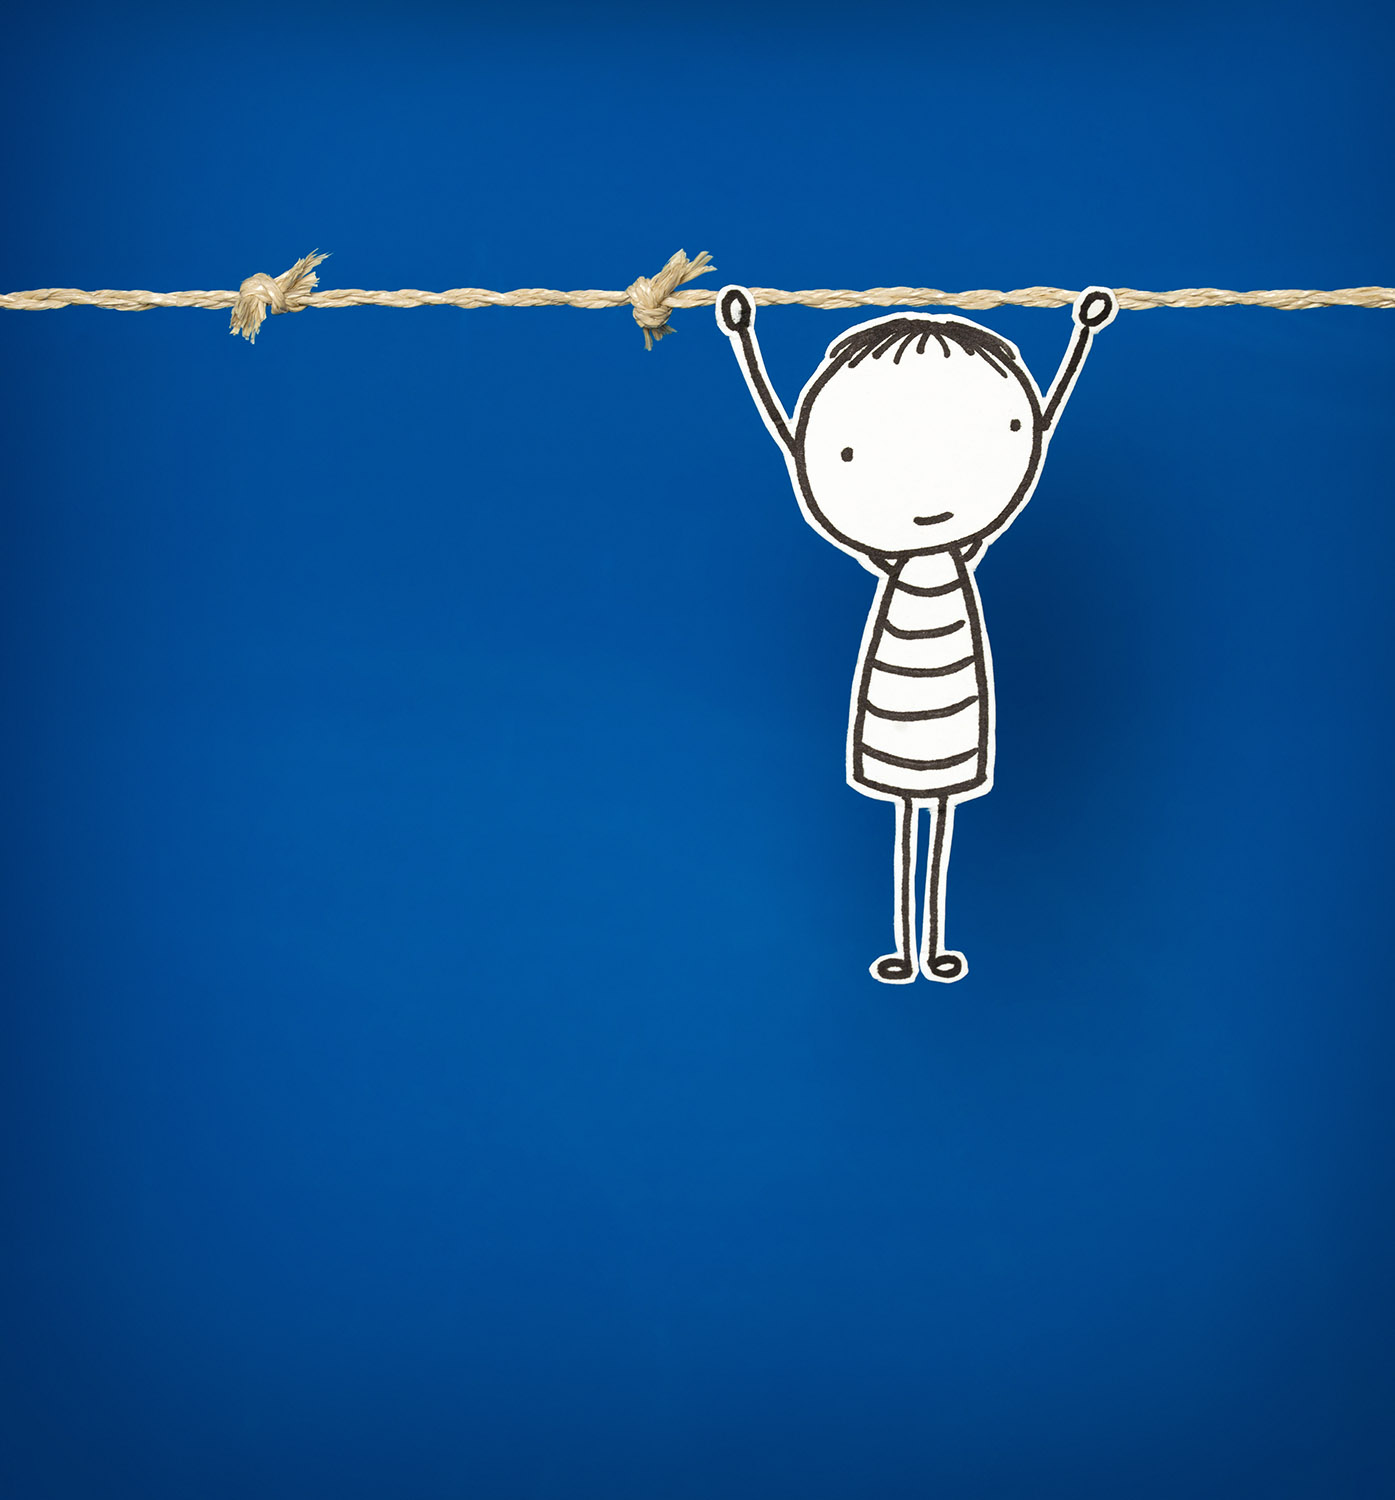 Little hand drawn Man - Hanging on. Perseverance